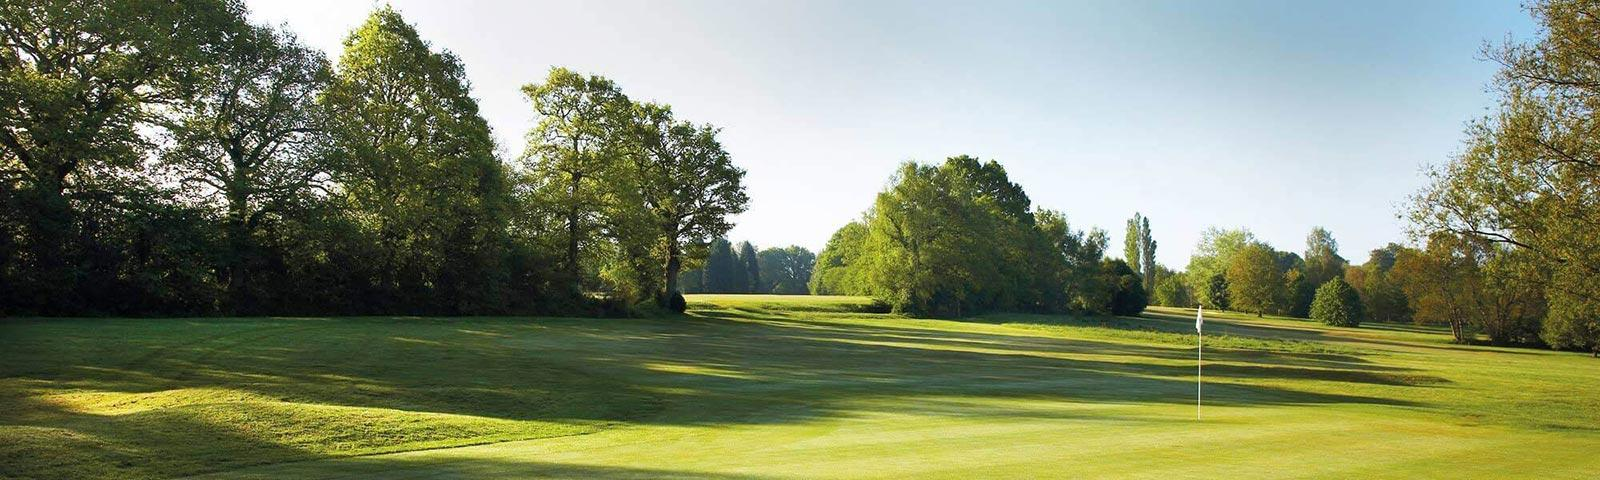 View of the golf course at Lingfield Park Resort.